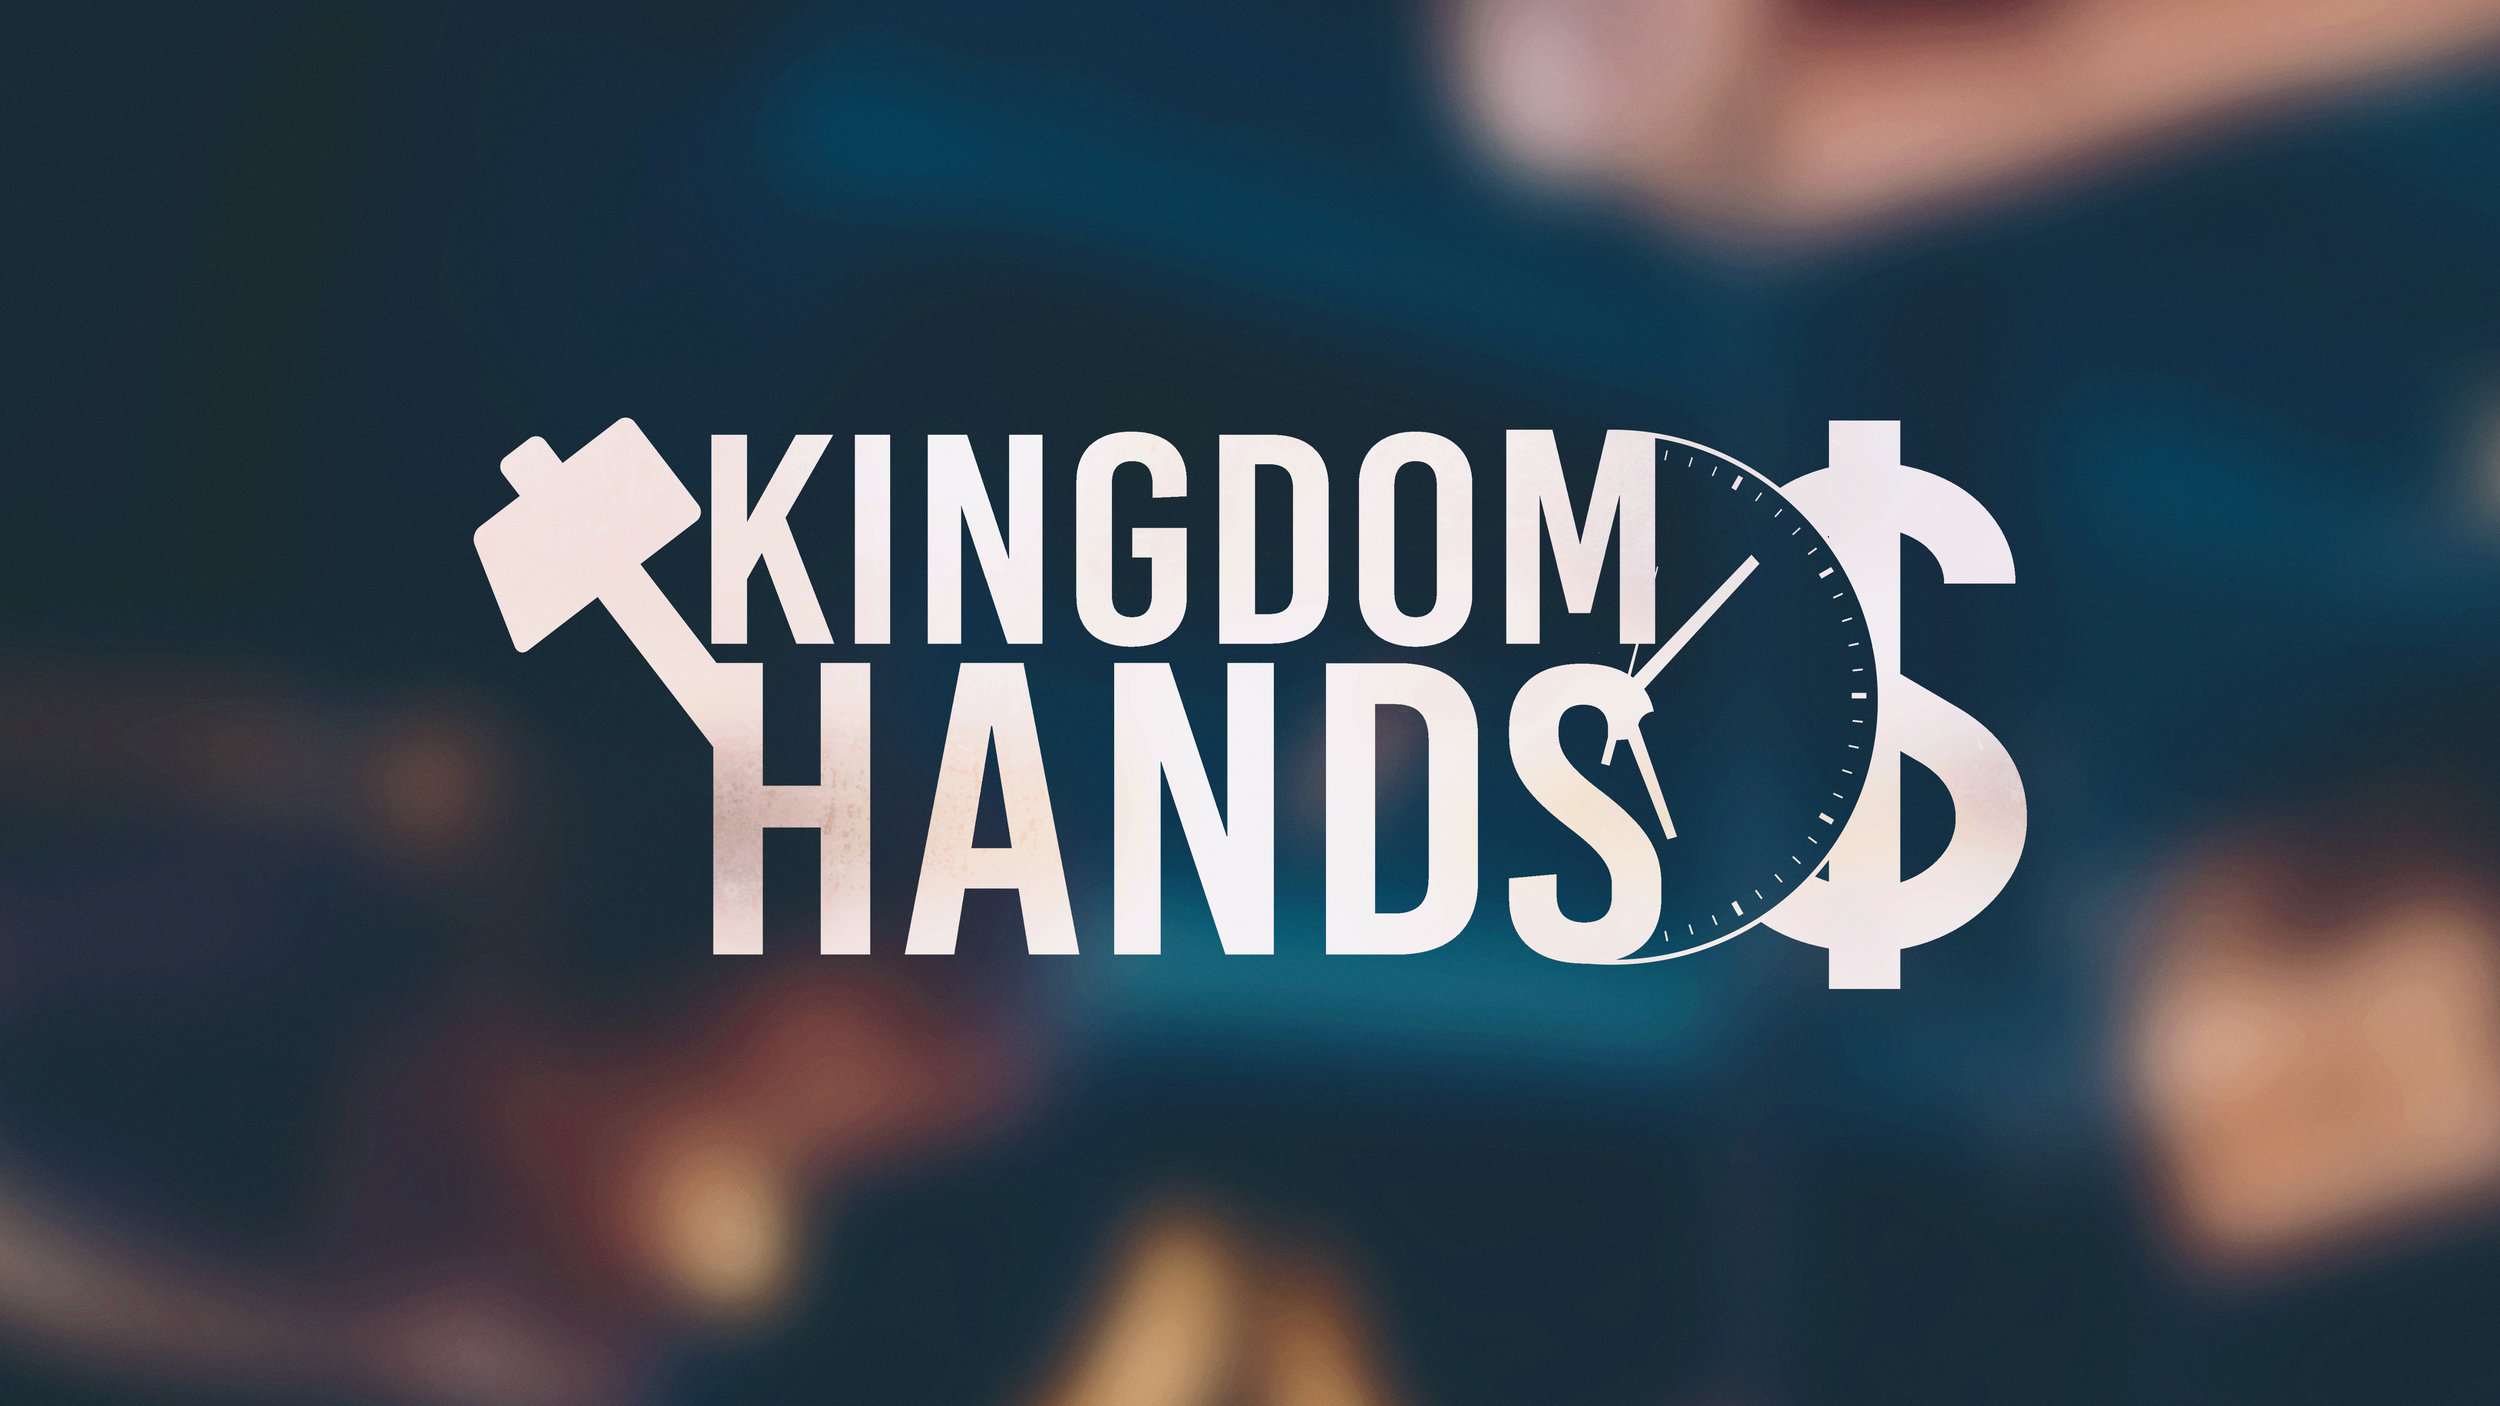 kingdom hands logo.jpg